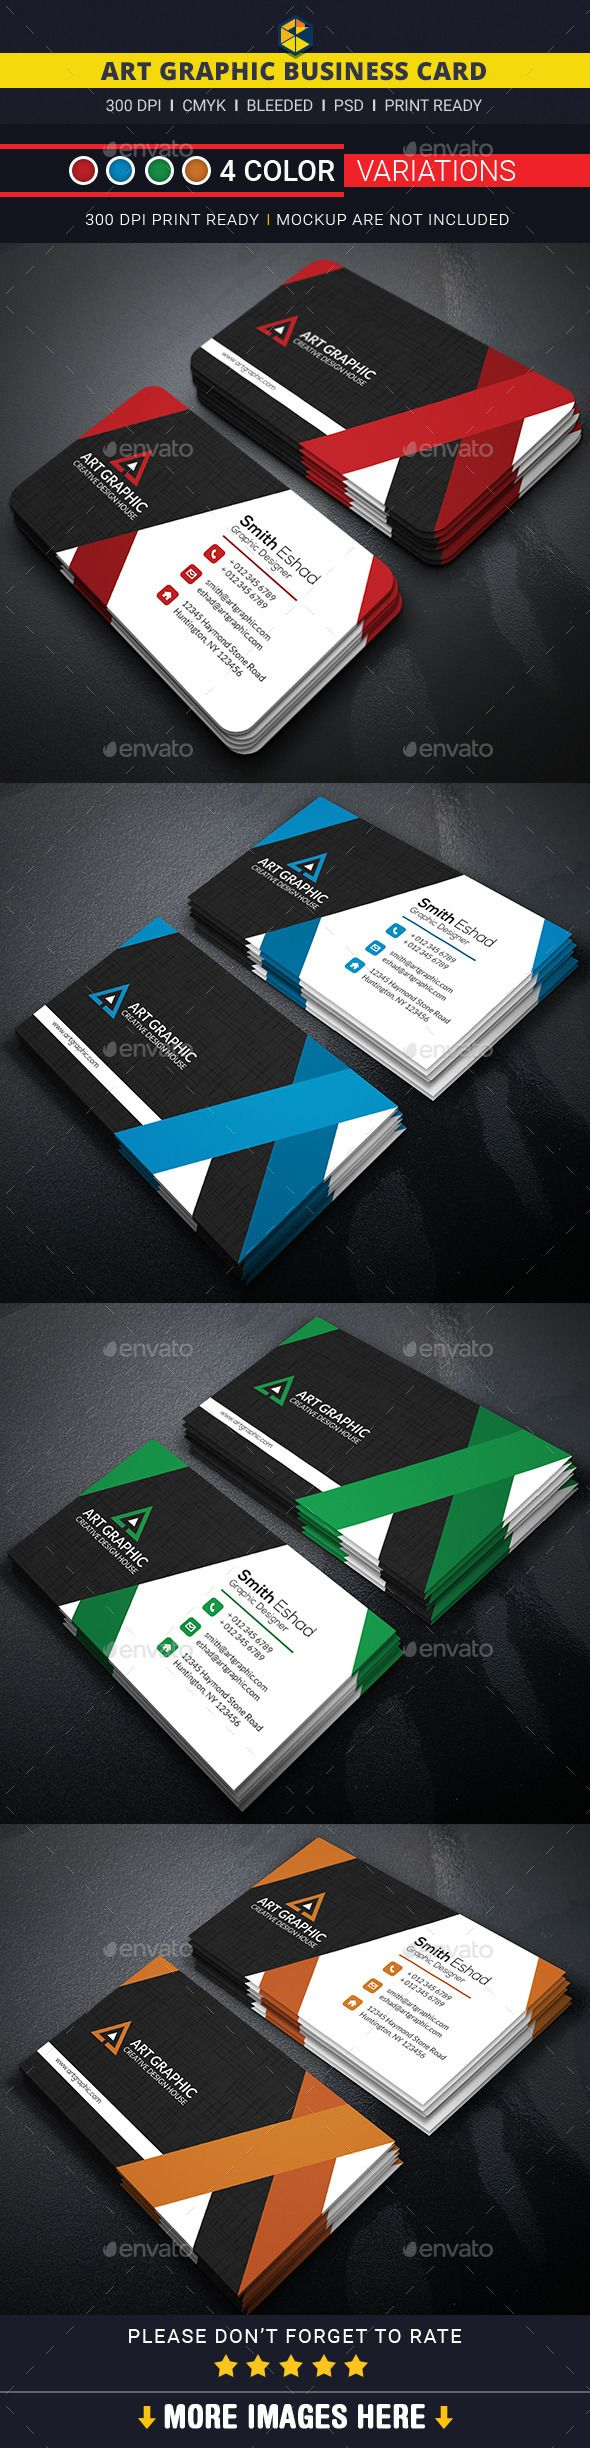 265 Best Business Card Images On Pinterest Business Card Design